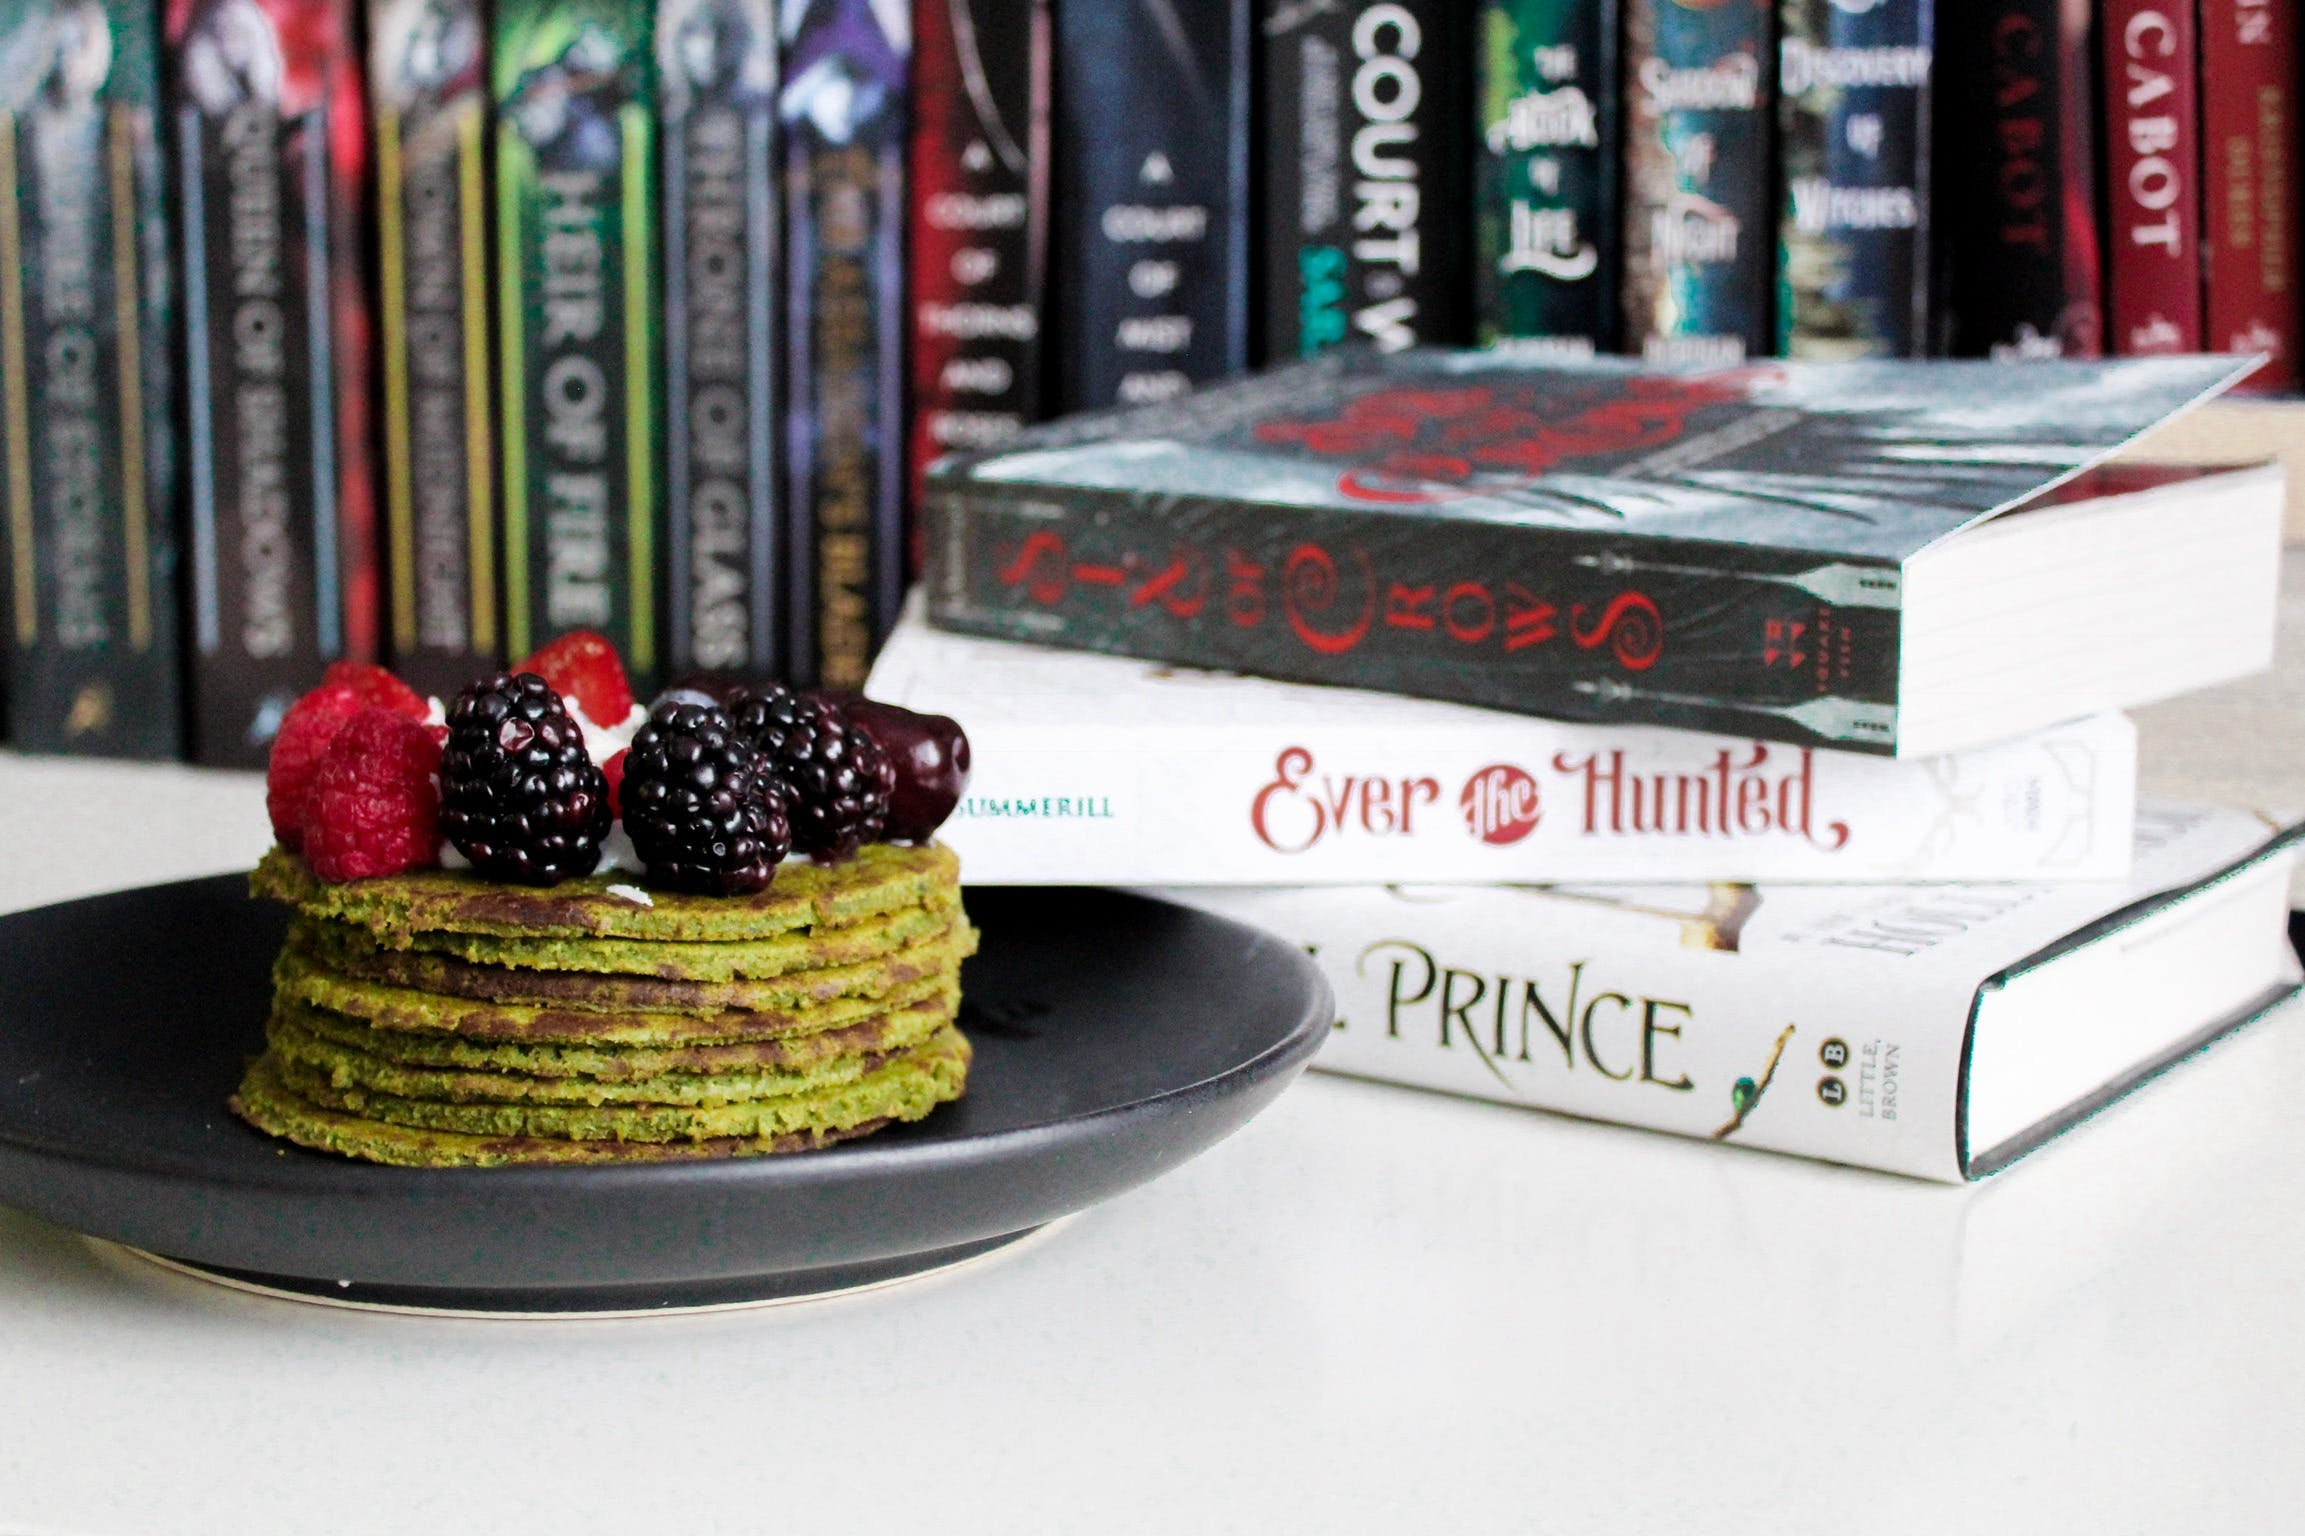 Books Near Cake on Plate